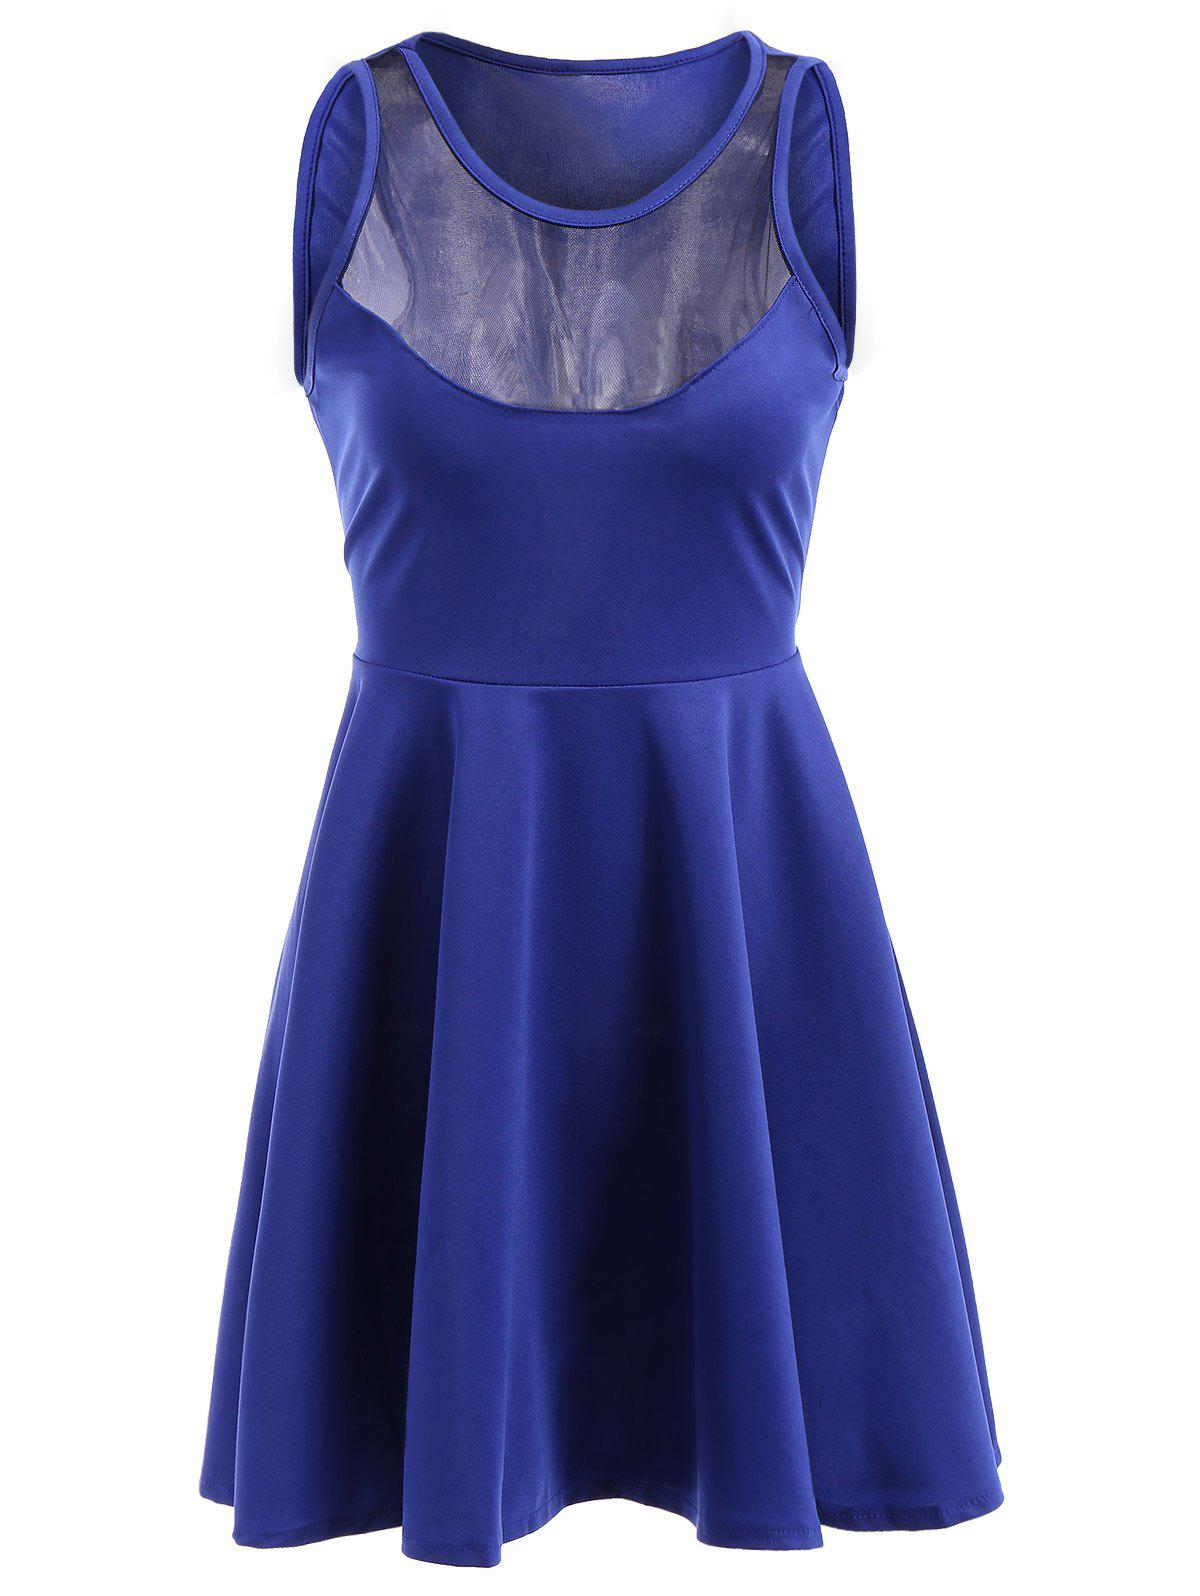 Casual Jewel Neck Sleeveless See-Through A-Line Women's Dress crystal lux бра crystal lux joy ap1